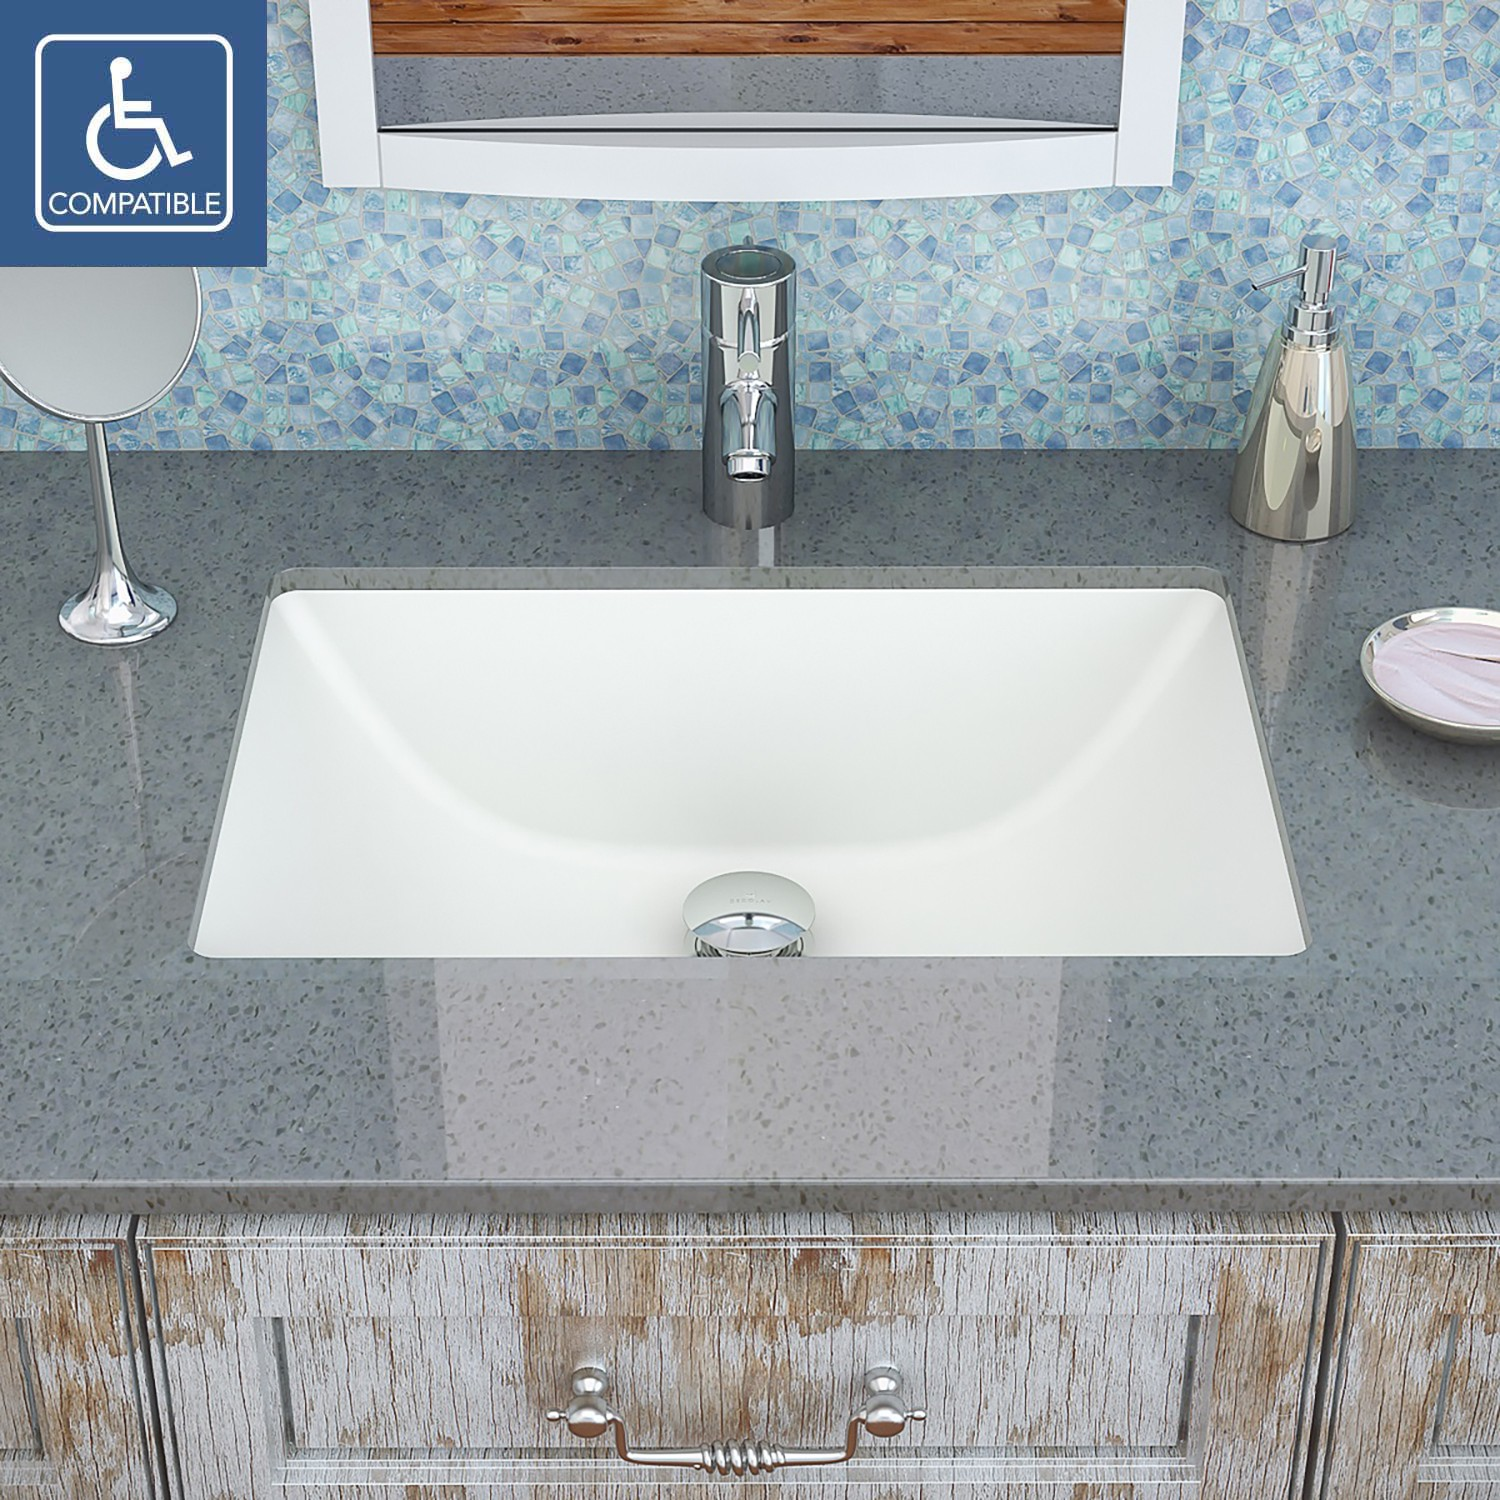 Decolav Callensia 1402 Series Rectangular Undermount Vitreous China Bathroom Sink